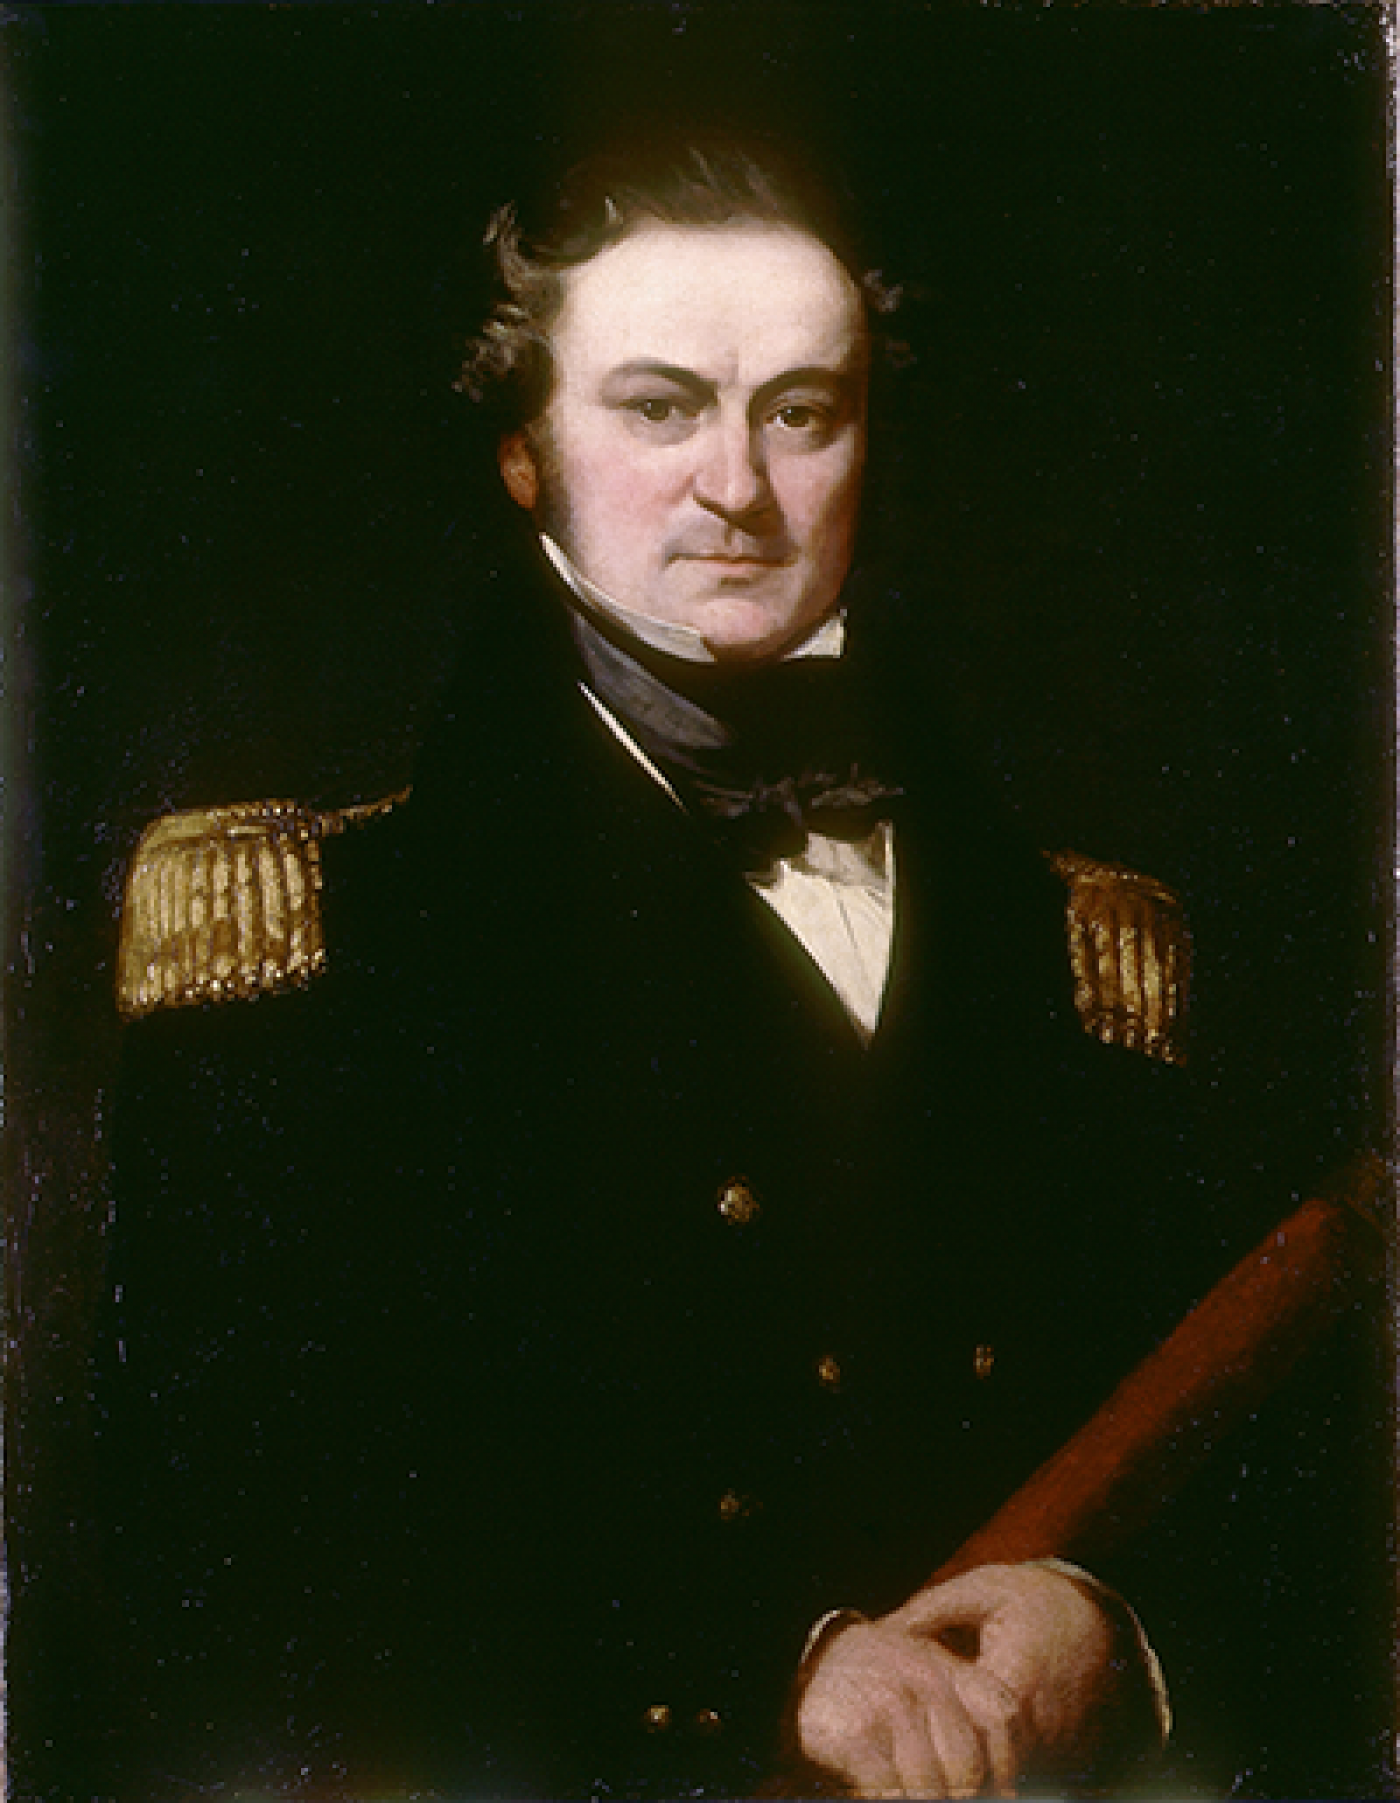 Captain William Edward Parry by Charles Skottowe